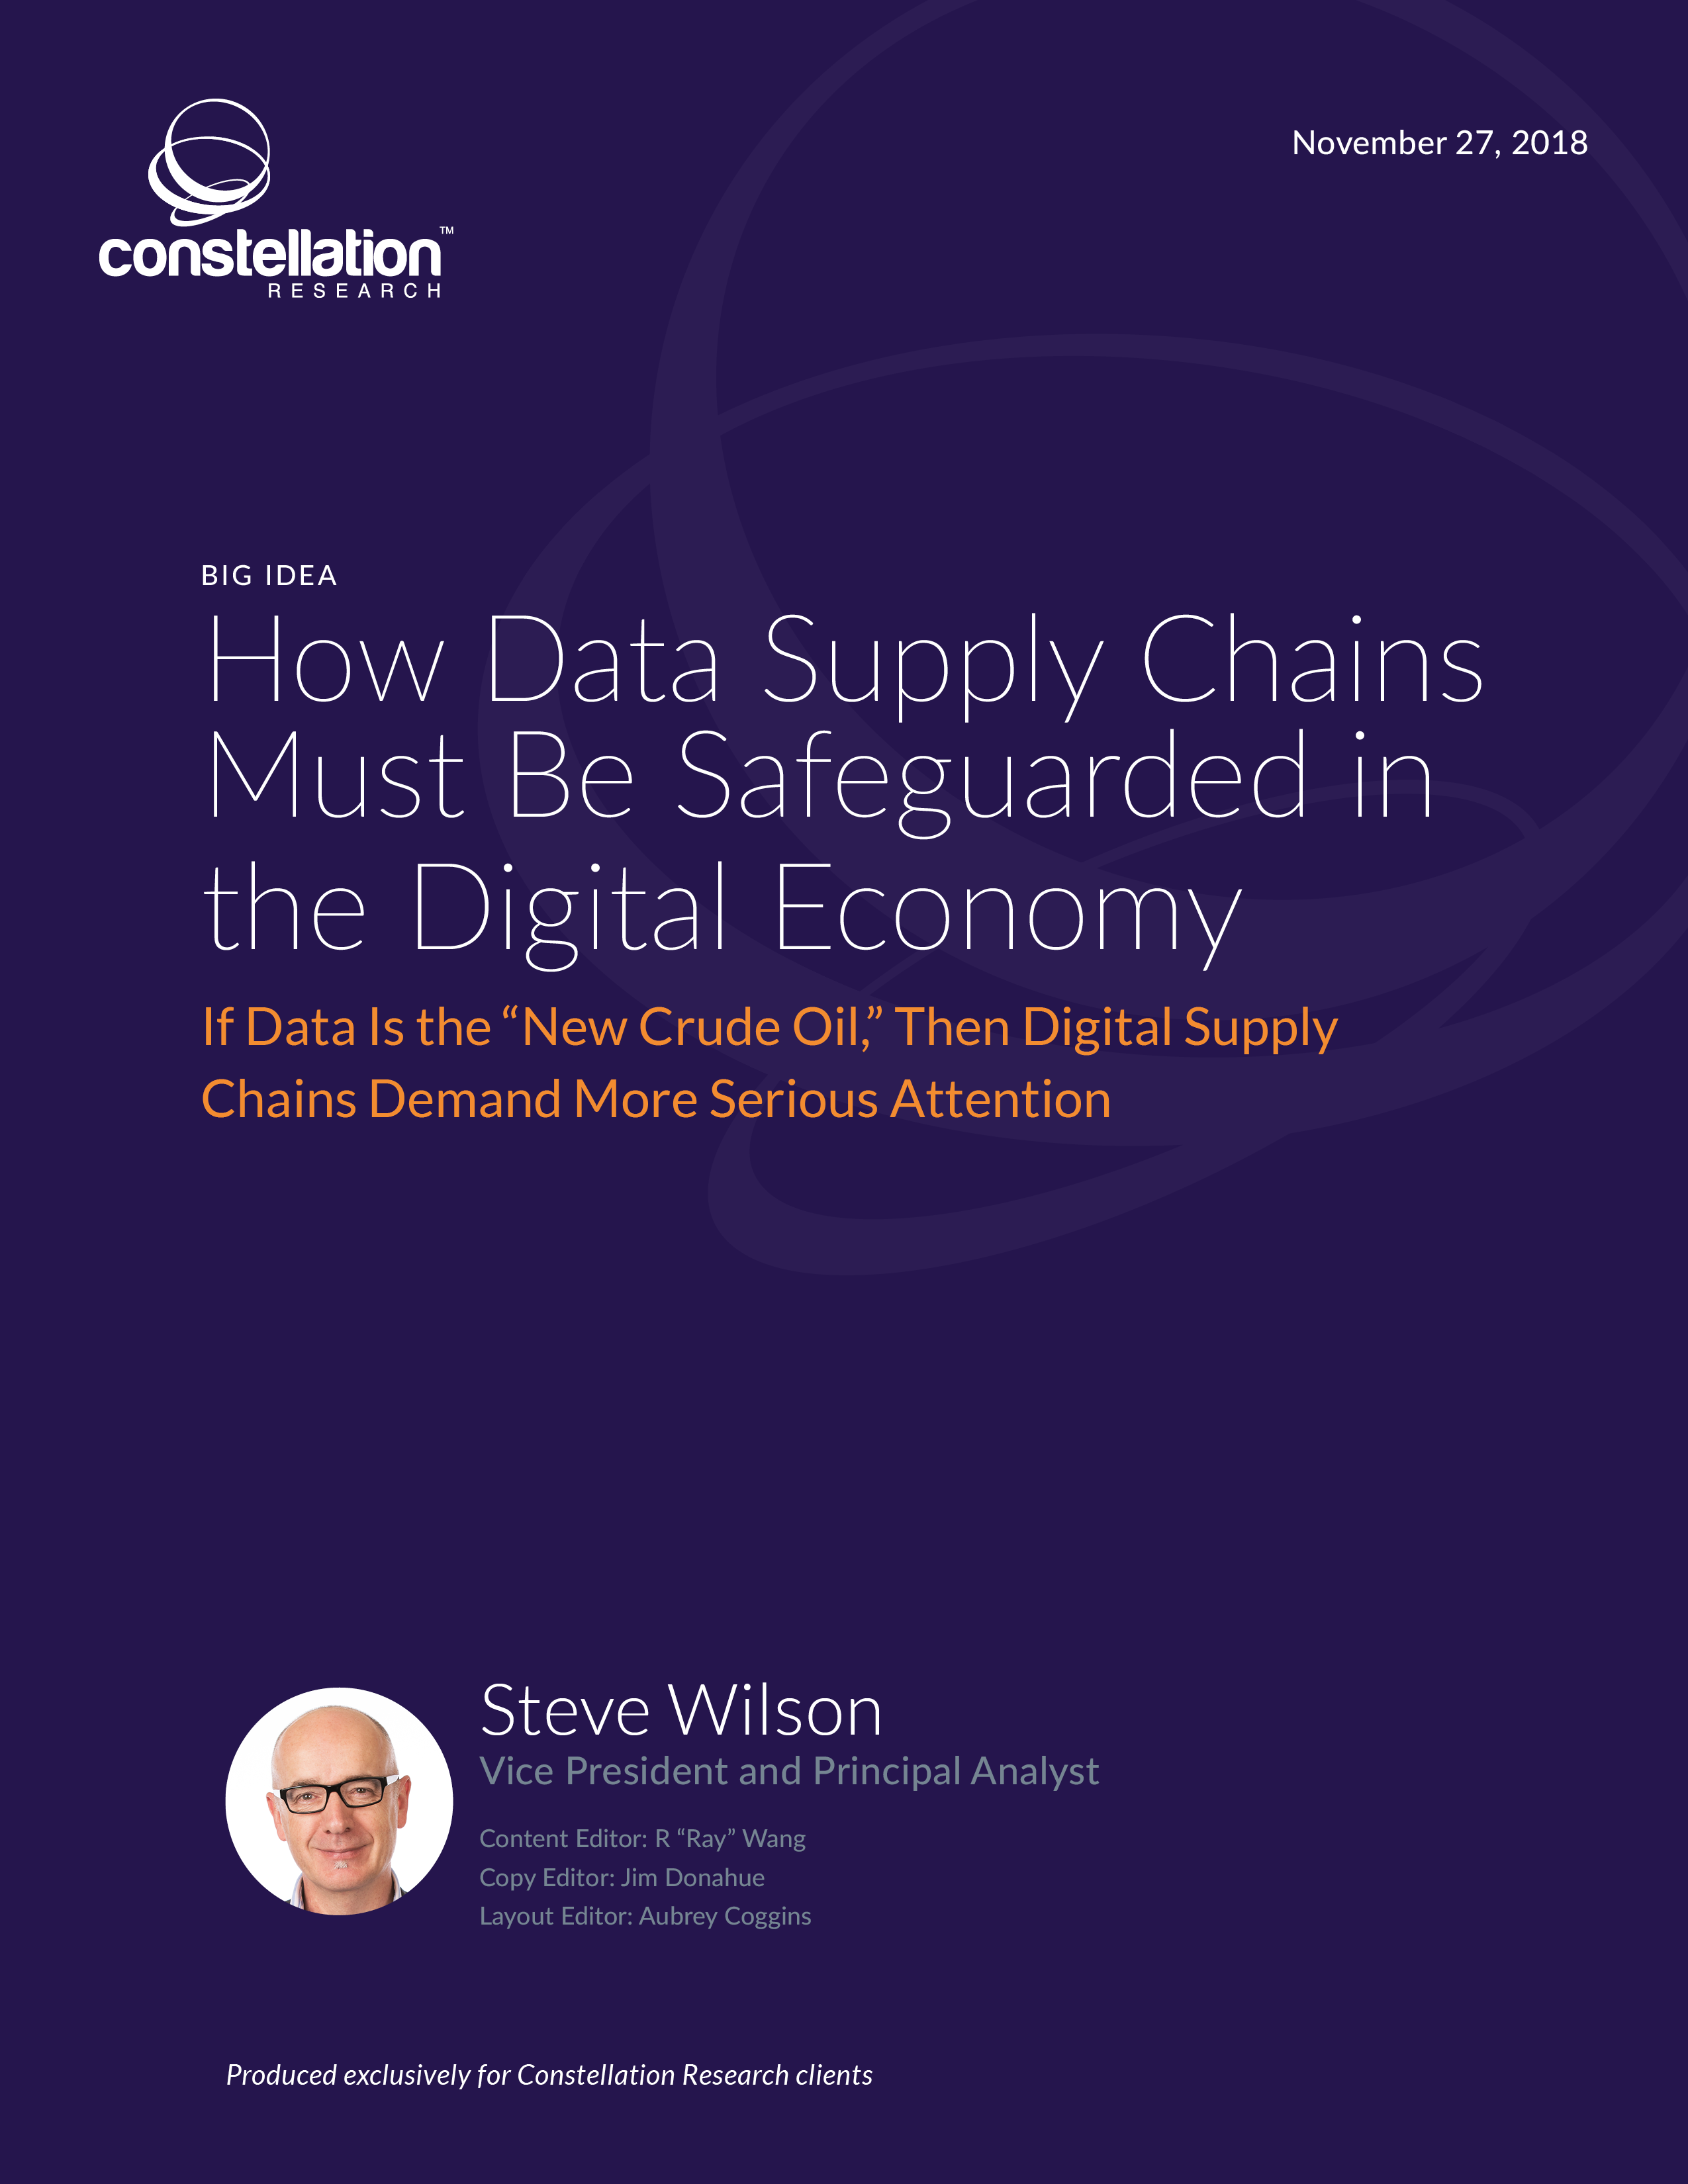 How Data Supply Chains Must Be Safeguarded in the Digital Economy